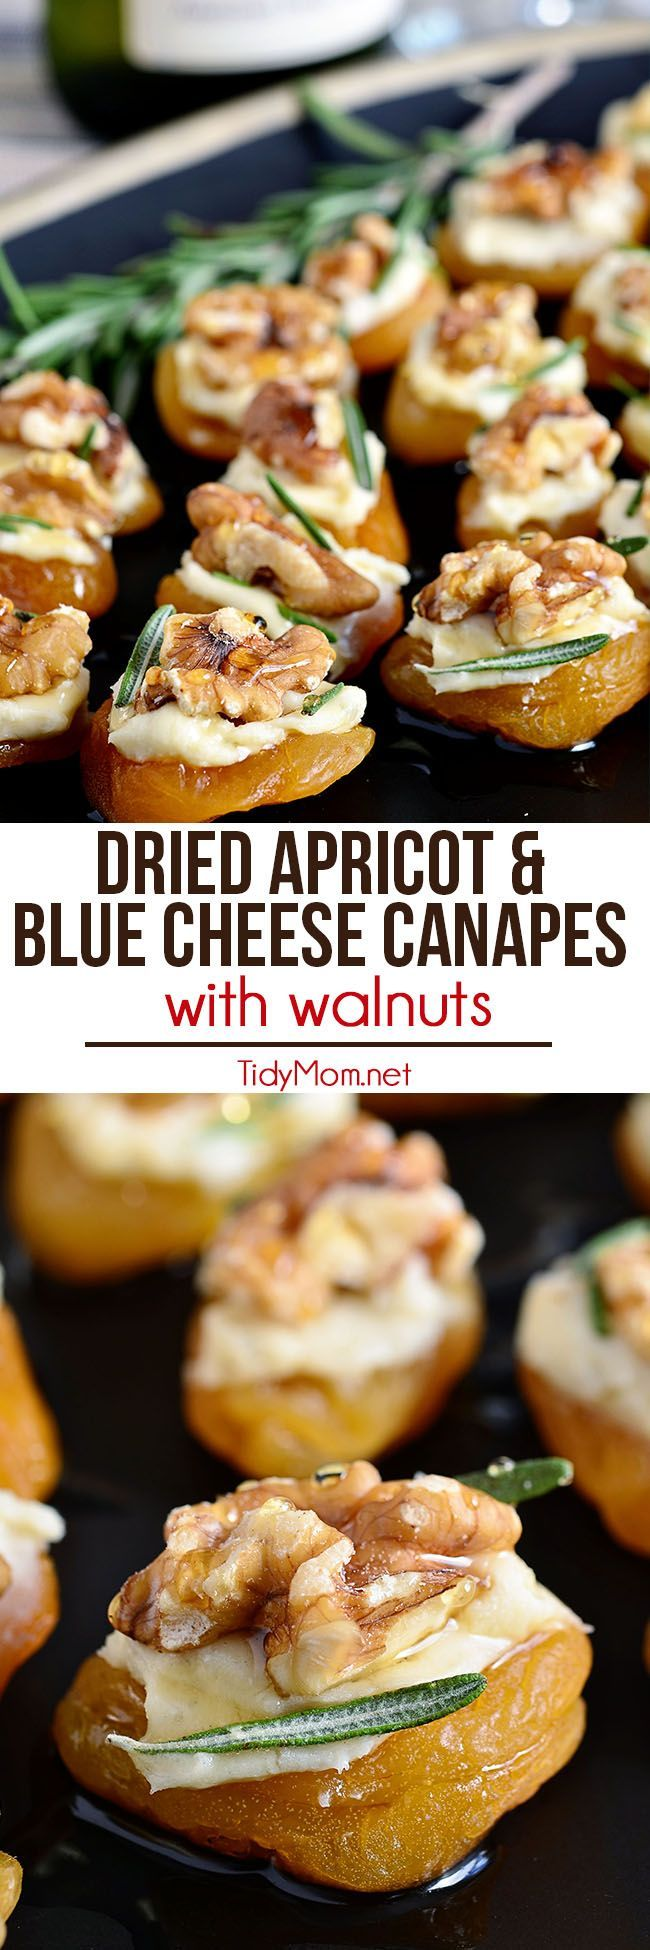 Making a delicious appetizer for a party doesn't have to be a struggle! Dried Apricot and Blue Cheese Canapes with Walnuts come together in no time. They are simple, yet elegant enough for any kind of party. Get the Recipe at TidyMom.net: